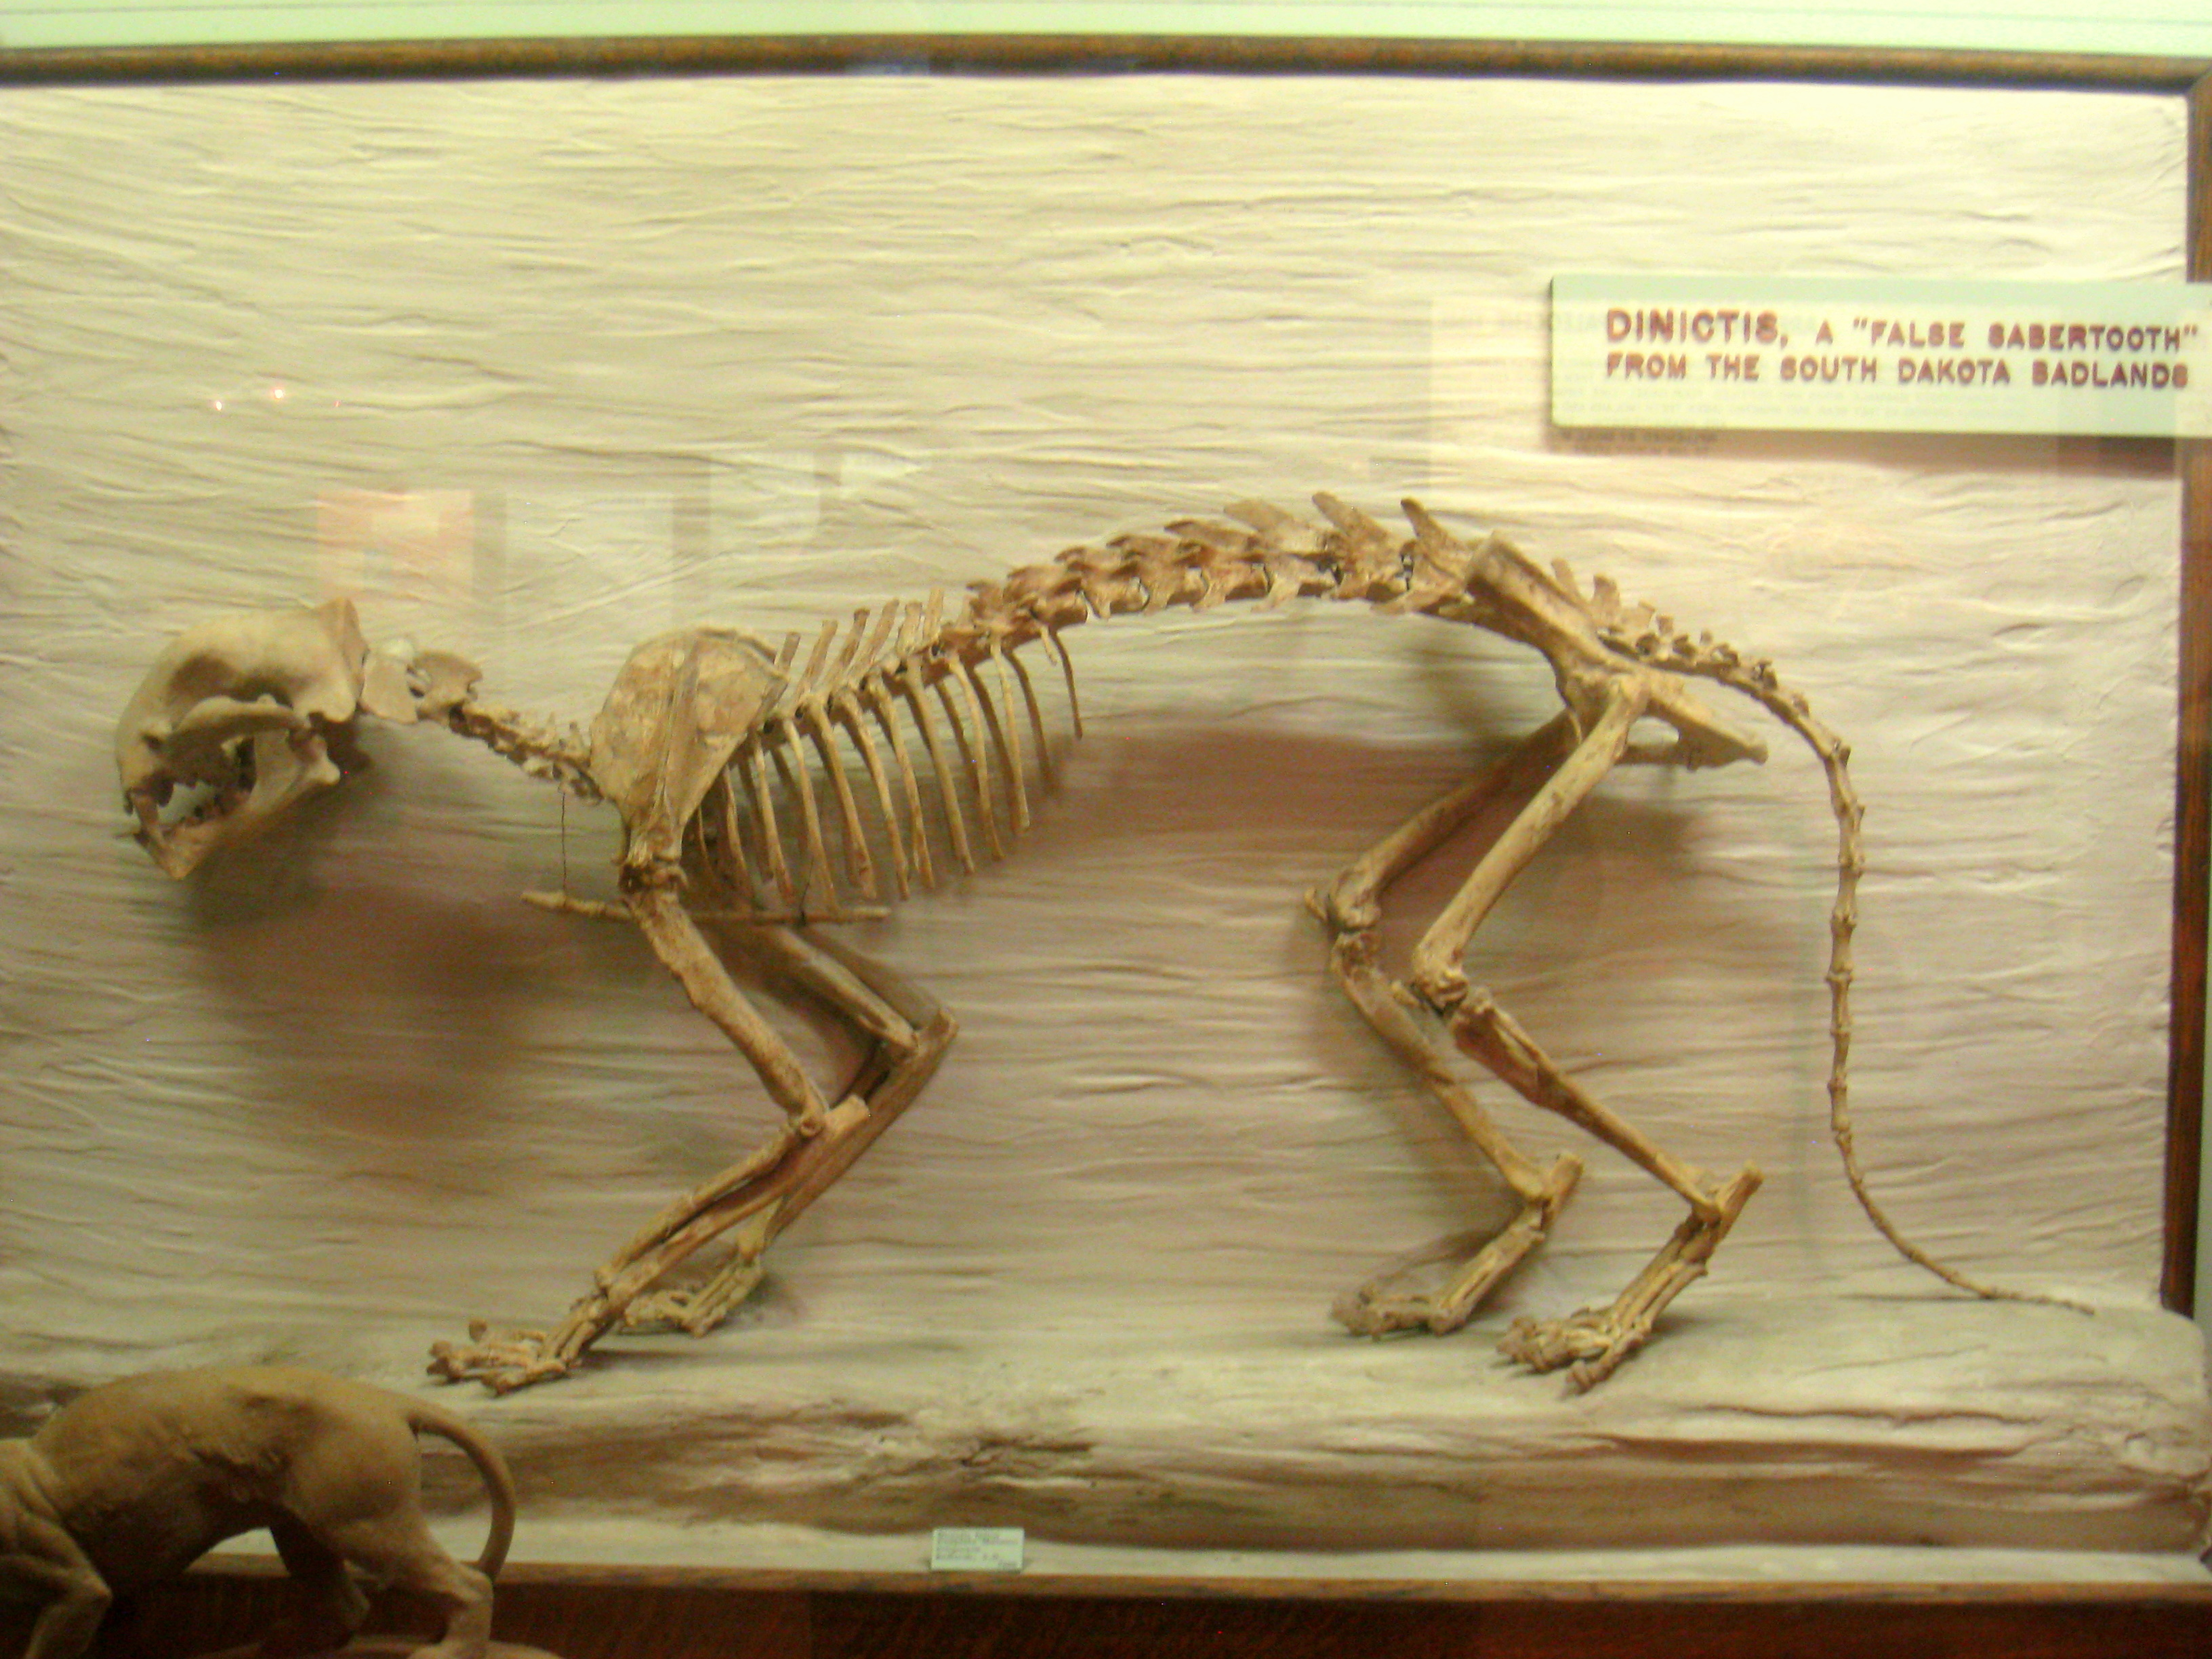 https://upload.wikimedia.org/wikipedia/commons/8/87/Dinictis_Exhibit_Museum_of_Natural_History.JPG